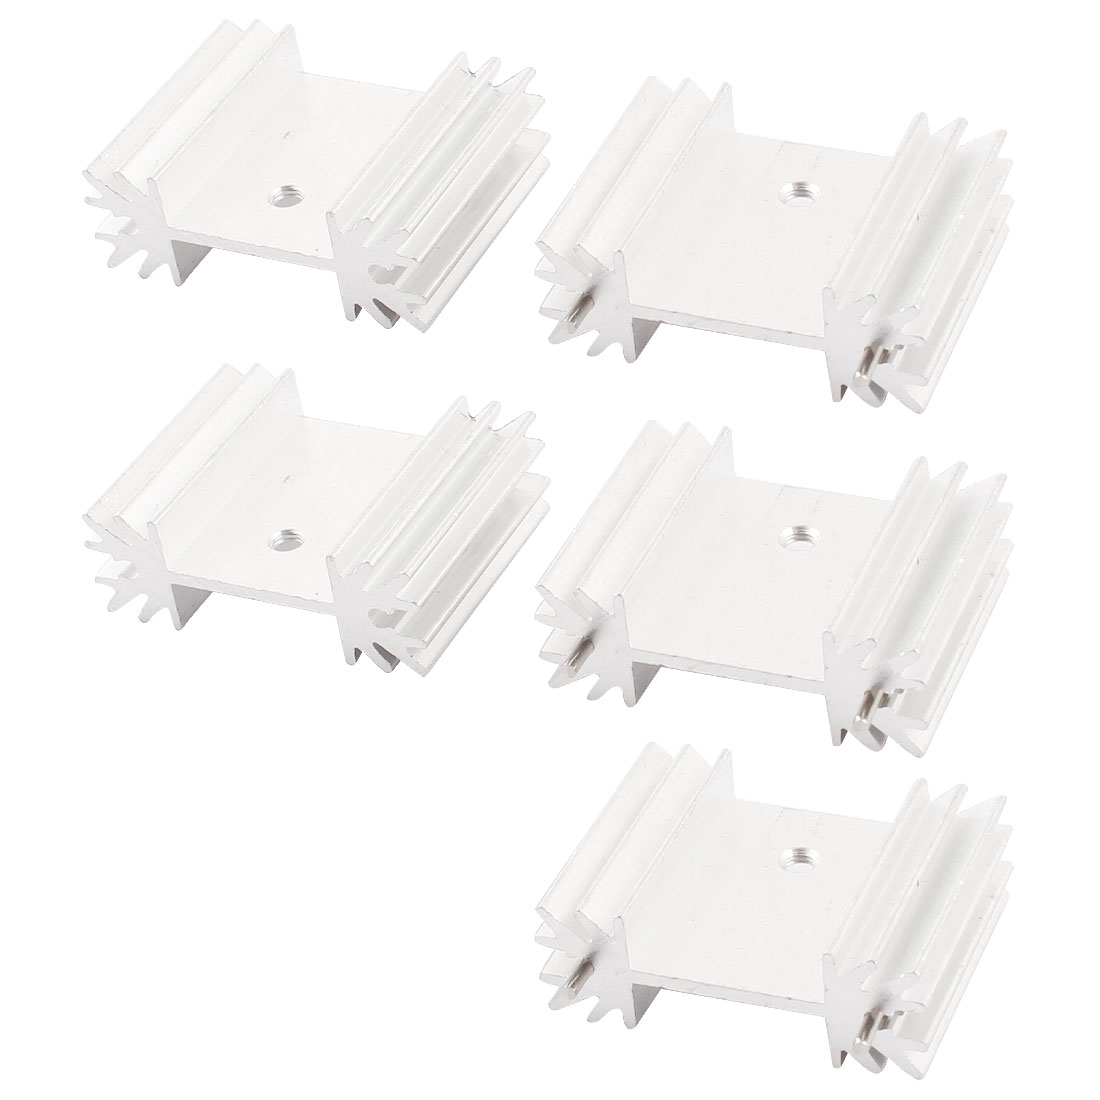 PCB Board Parts Silver Tone Aluminium Radiator Fin Cooling Cooler Heatsink Heat Sink 34x12x25mm 5pcs